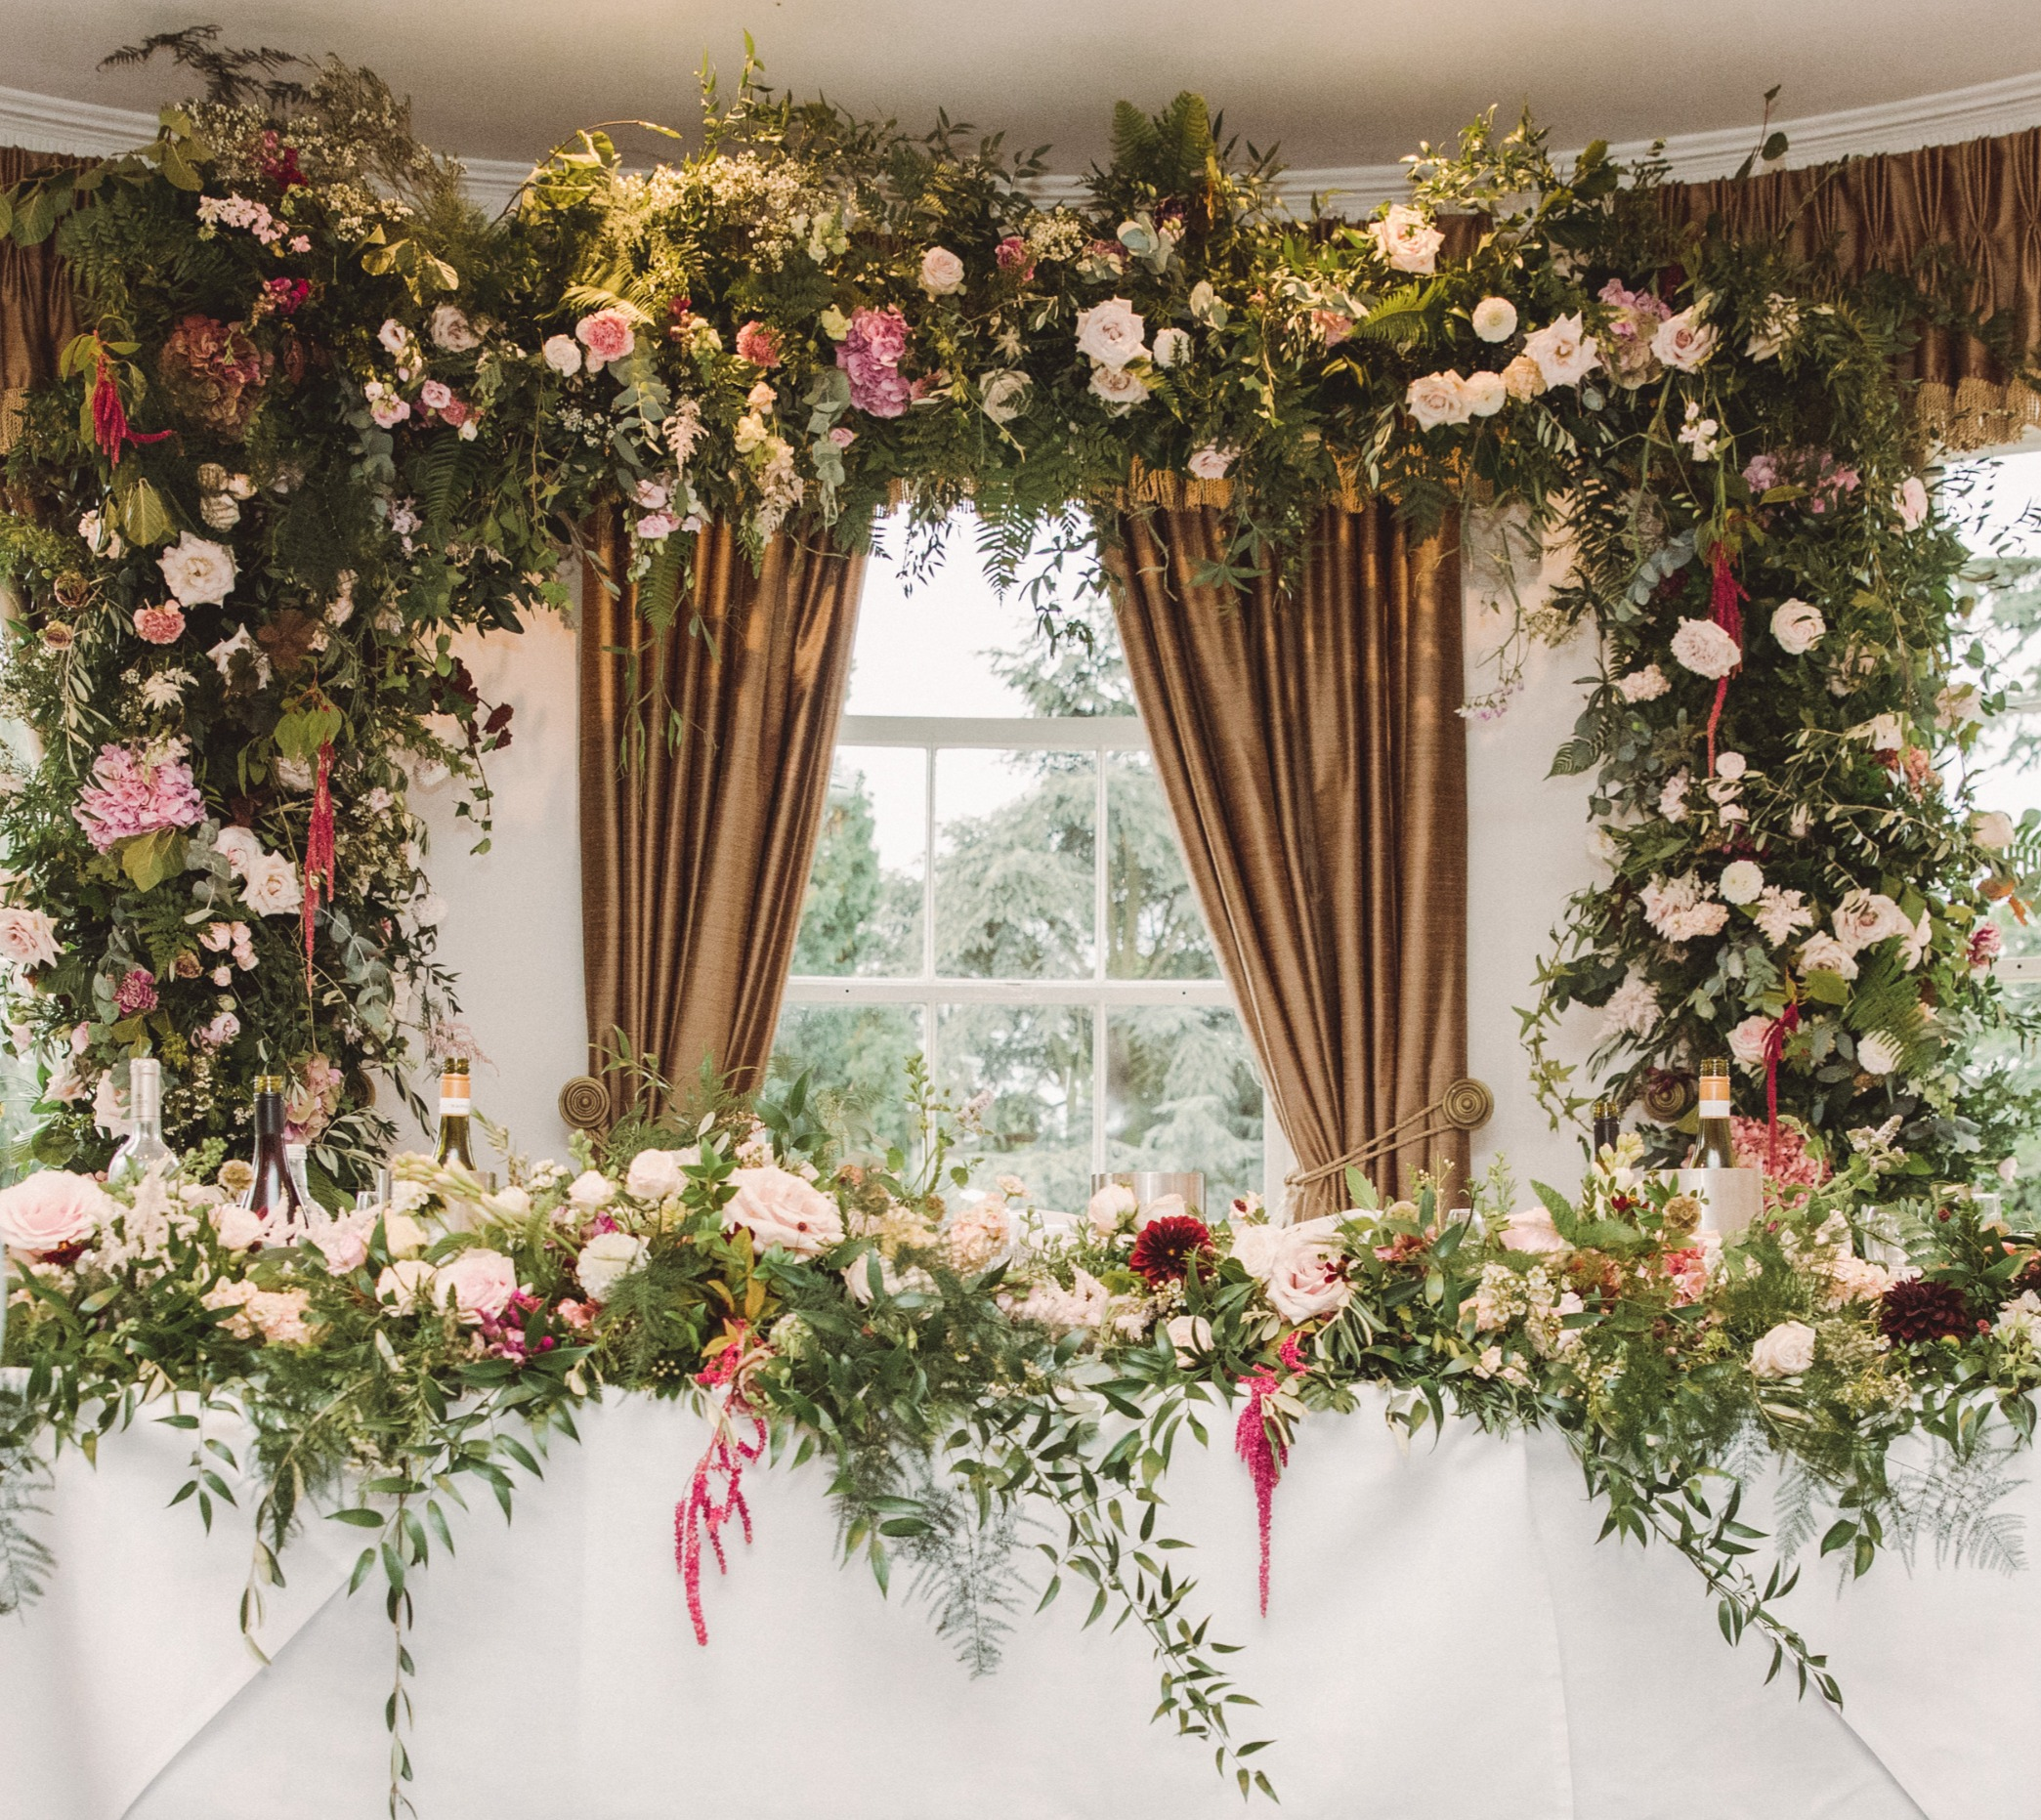 Floral arch and top table